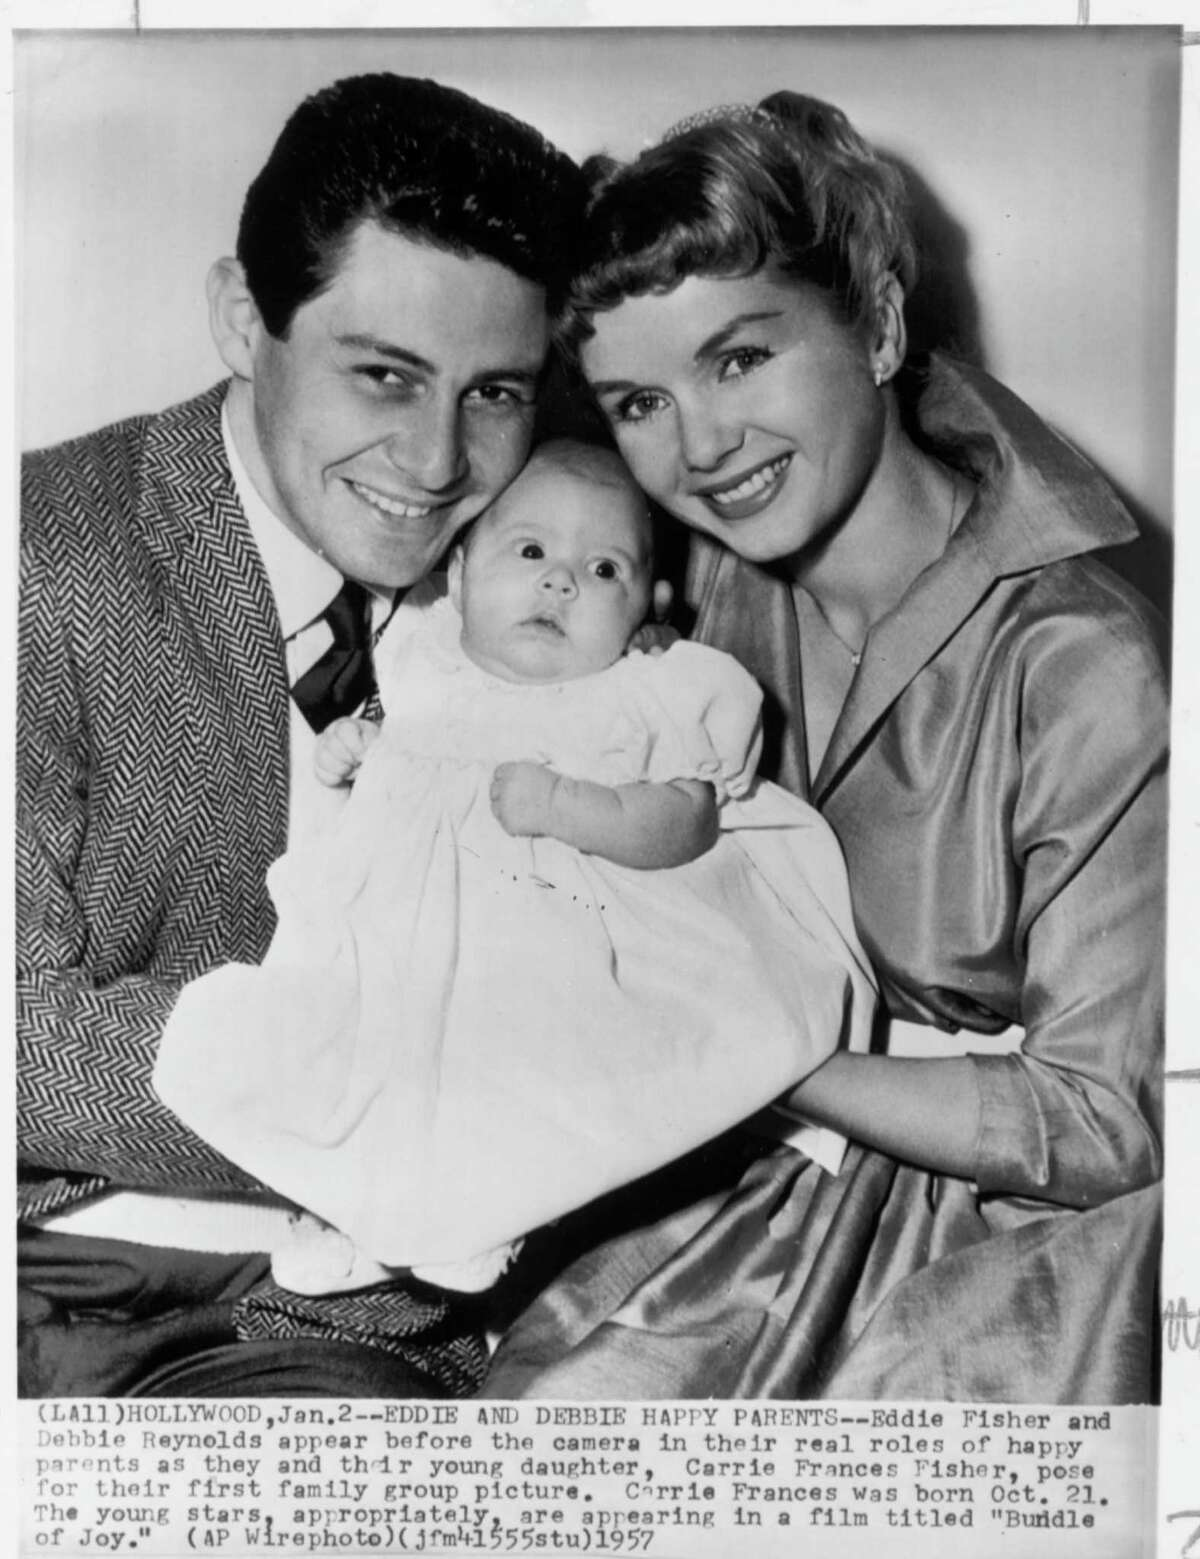 """AP CAPTION: HOLLYWOOD, JAN. 2, 1957 -- EDDIE AND DEBBIE HAPPY PARENTS-- Eddie Fisher and Debbie Reynolds appear before the camera in their real roles of happy parents as they and their young daughter, Carrie Frances Fisher, pose for their first family group picture. Carrie Frances was born Oct. 21. The young stars, appropriately, are appearing in a film titled """"Bundle of Joy."""" (AP WIREPHOTO). HOUCHRON CAPTION (11/16/1999): According to Eddie Fisher's new autobiography, things were not as happy as this photo indicates even before he left wife Debbie Reynolds, right, for Elizabeth Taylor. Fisher and Reynolds are pictured in 1957 with daughter Carrie Fisher."""